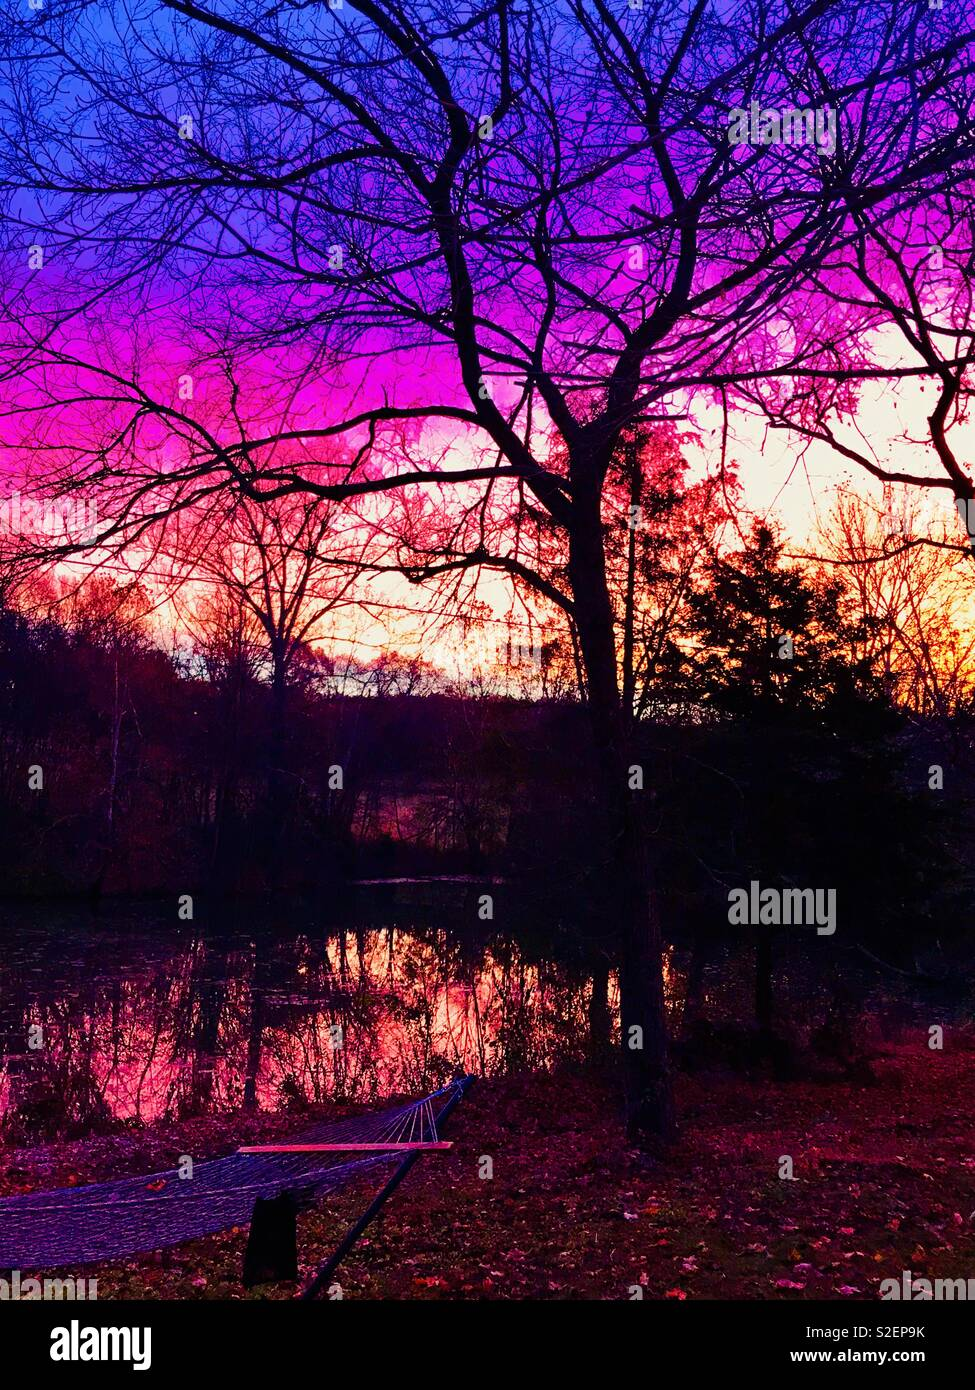 Sunset coloring a country sky Stock Photo: 311340783 - Alamy